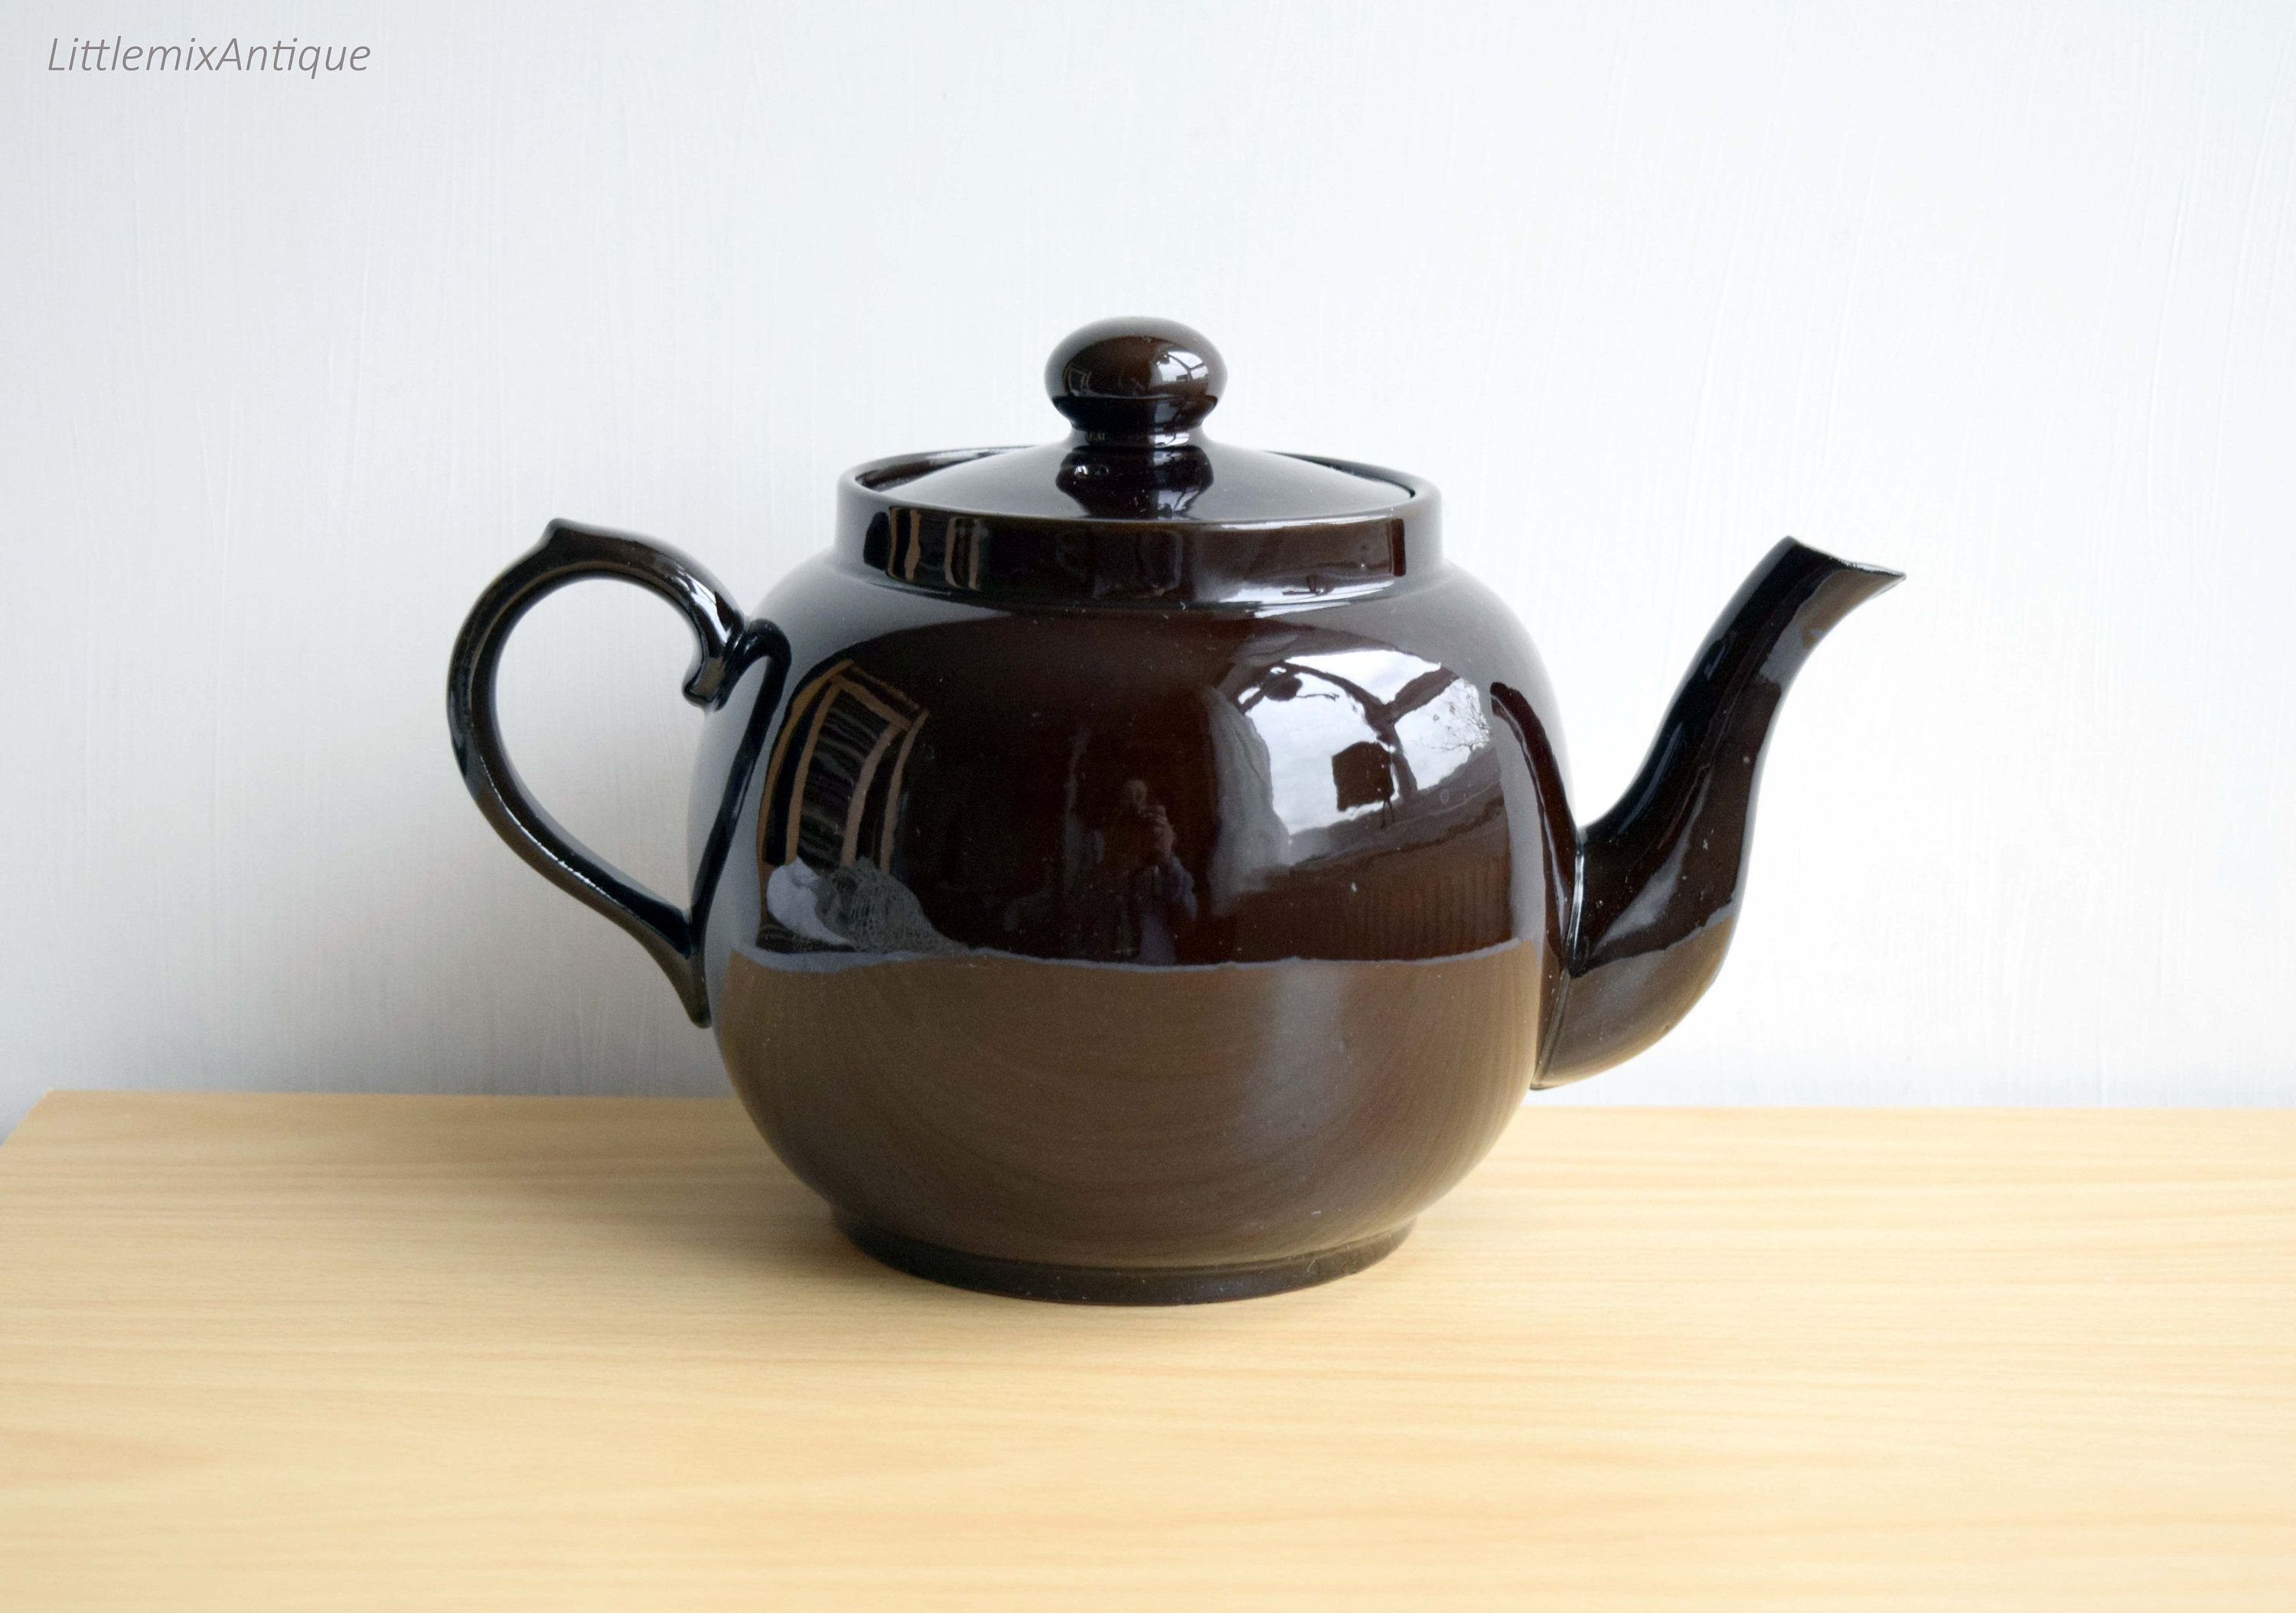 retro price kensington made in england classic brown betty style